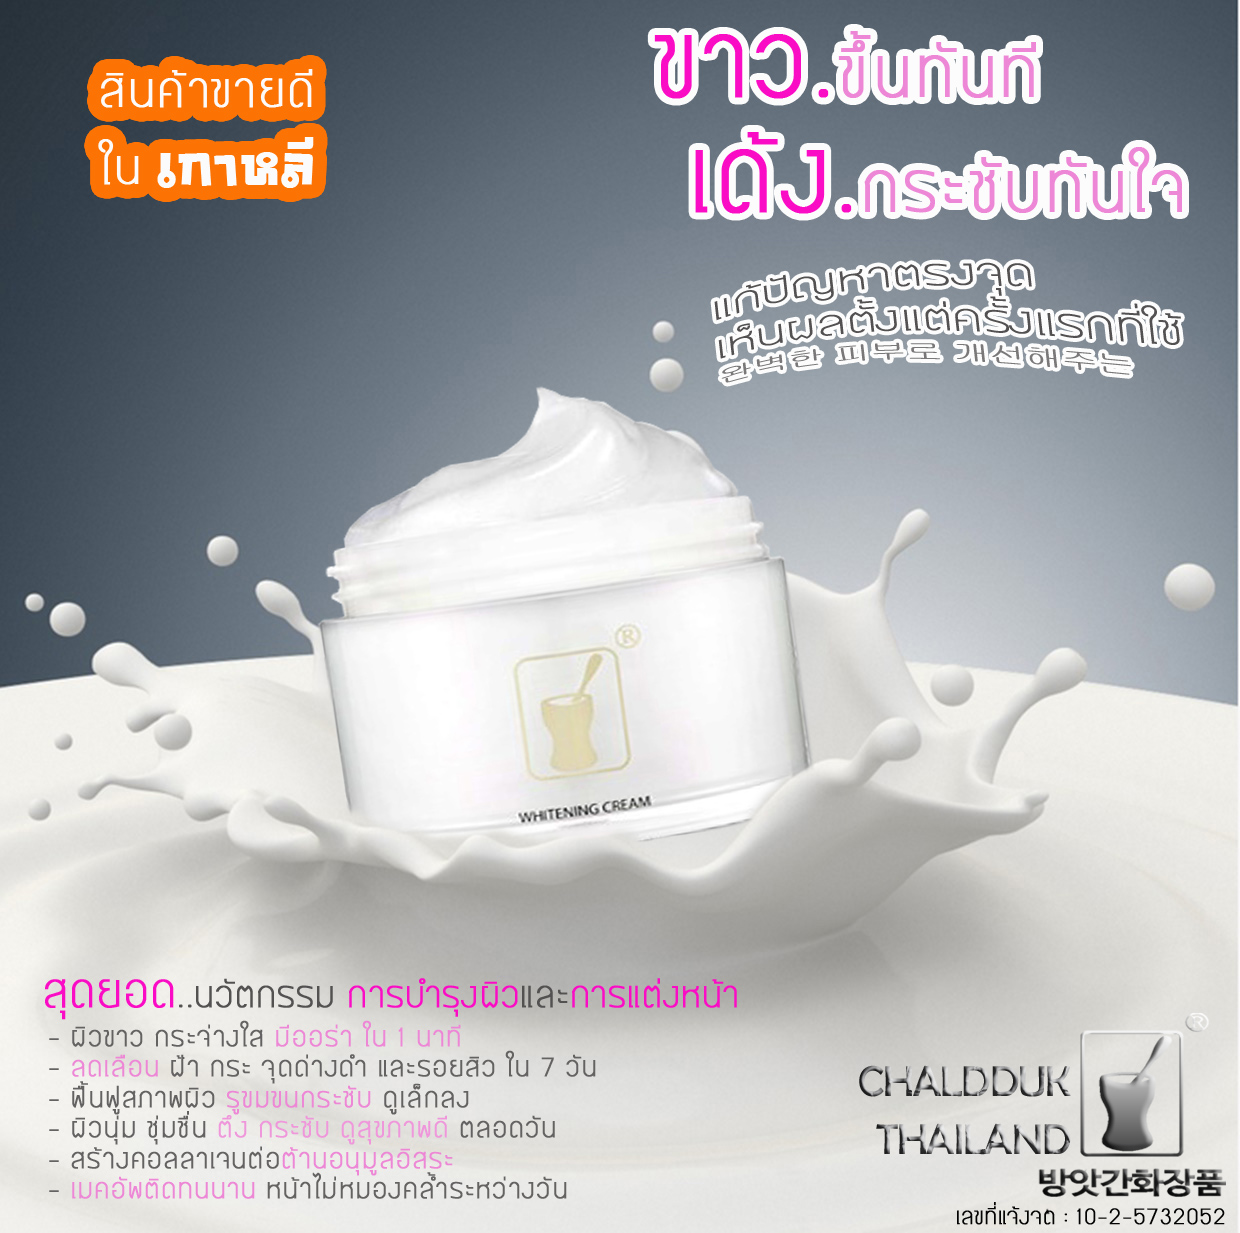 Chaldduk Whitening Cream